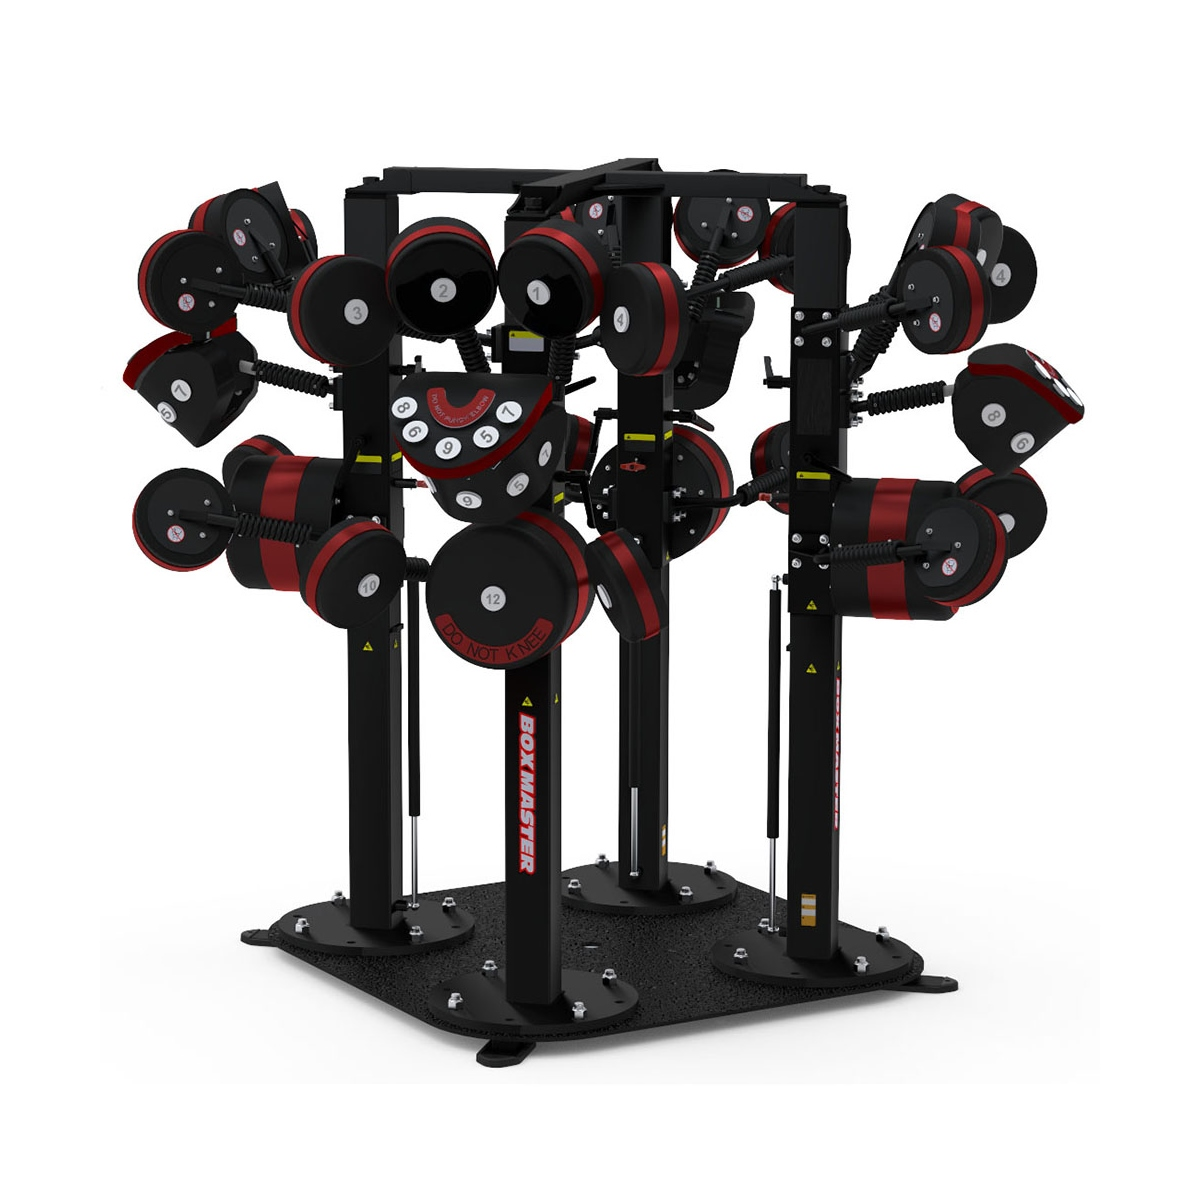 BoxMaster® Quad Boxing Trainer